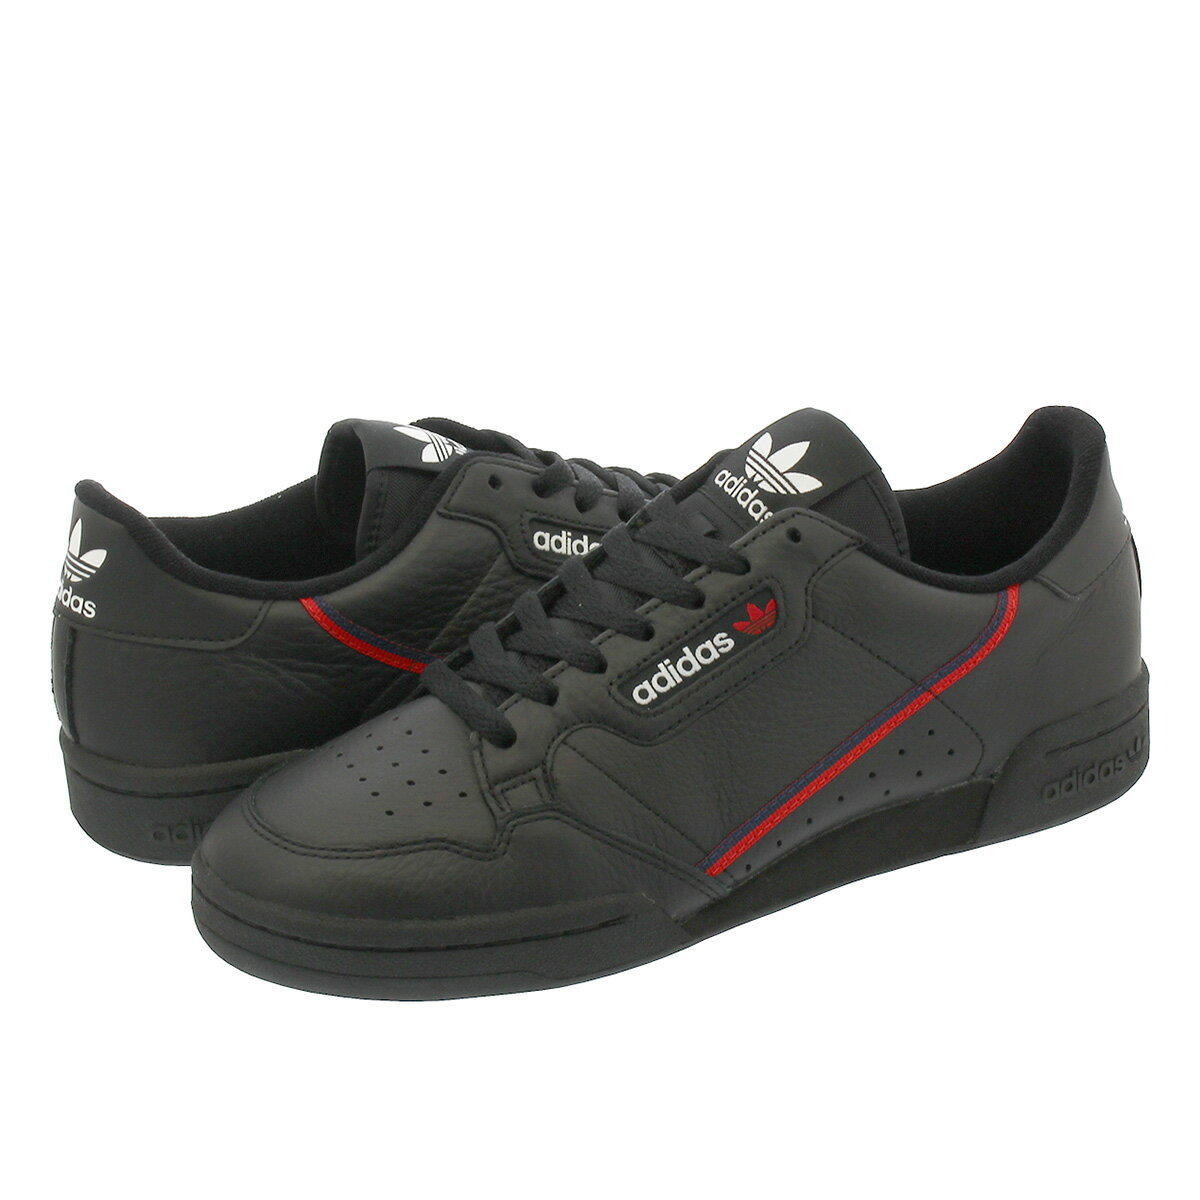 adidas CONTINENTAL 80 【adidas Originals】 アディダス コンチネンタル 80 CORE BLACK/SCARLET/COLLEGIATE NAVY b41672